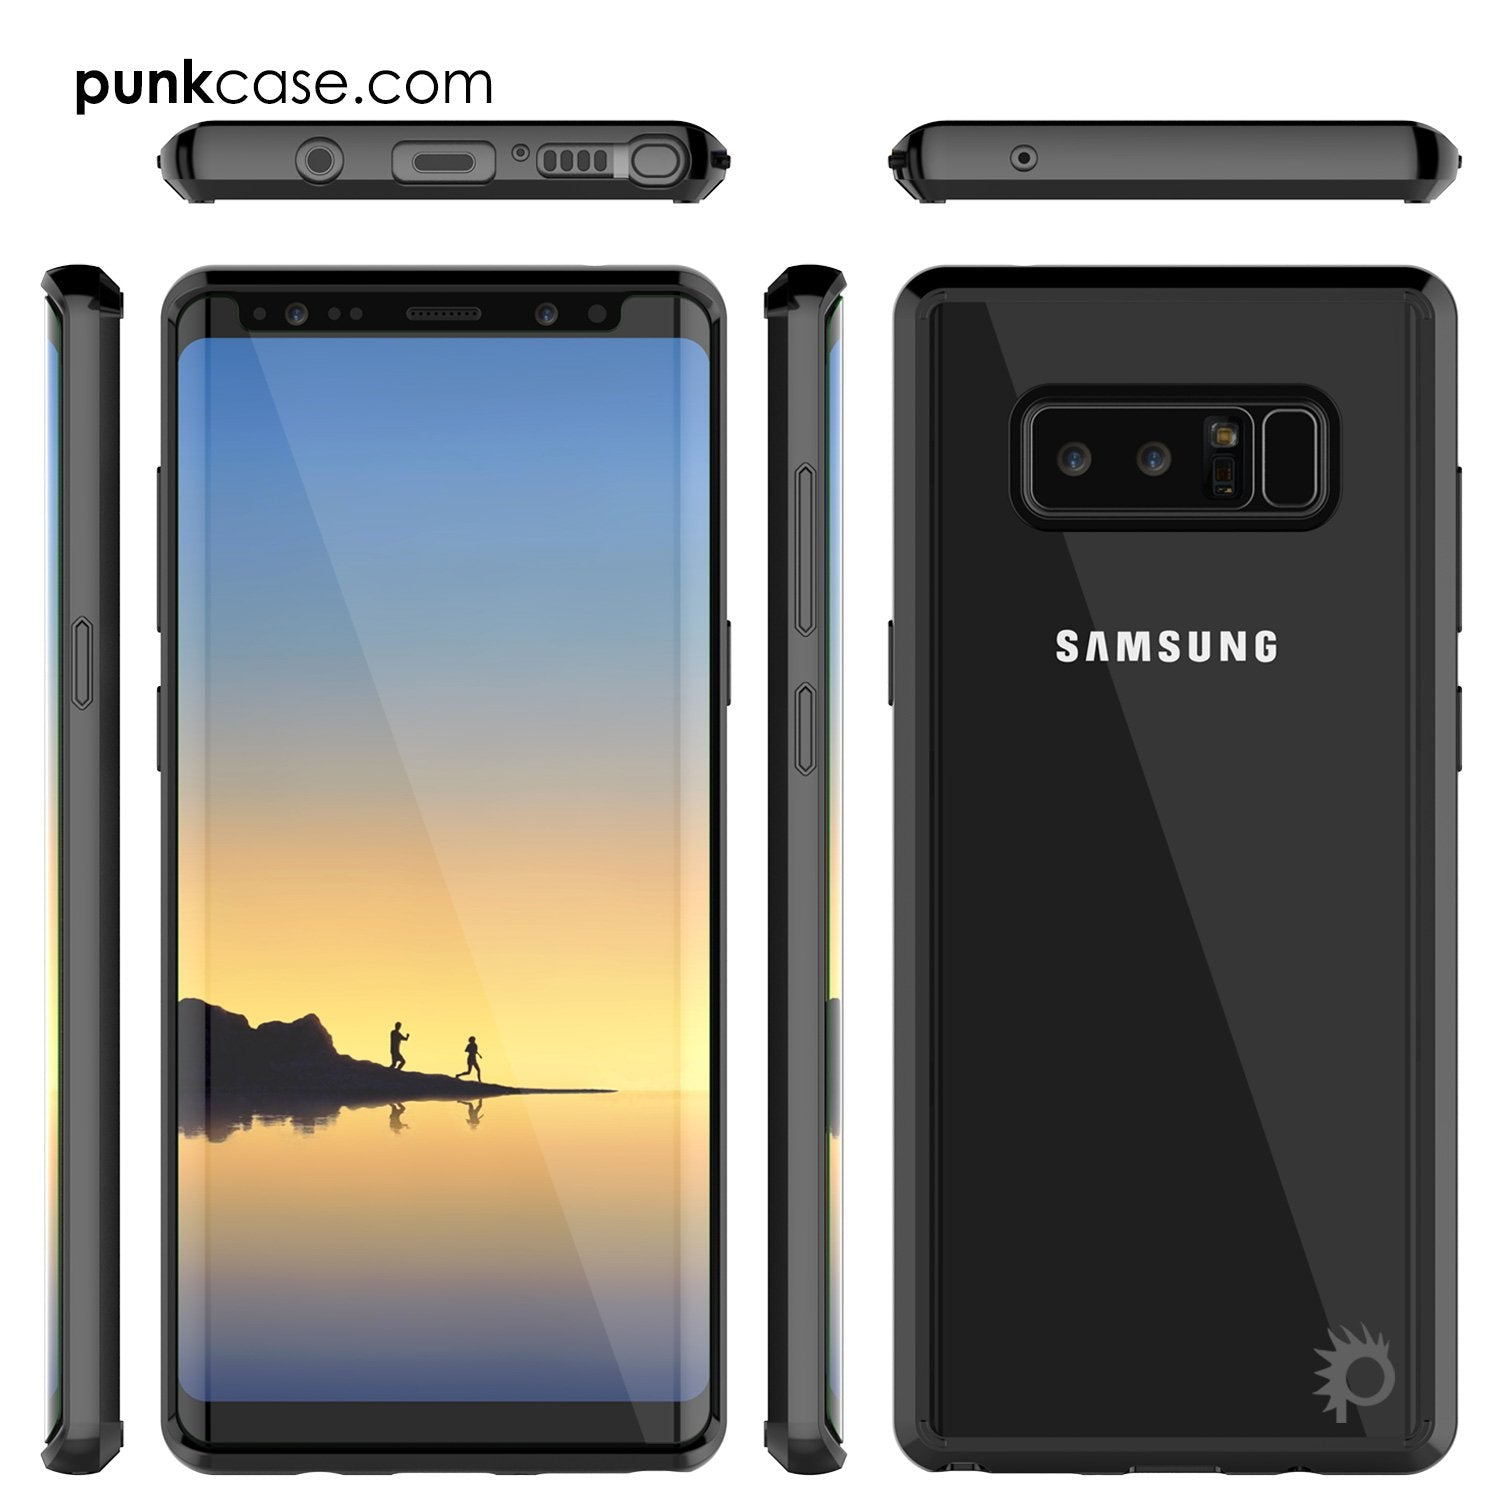 Galaxy Note 8 Punkcase, LUCID 2.0 Series Armor Cover, [Black]